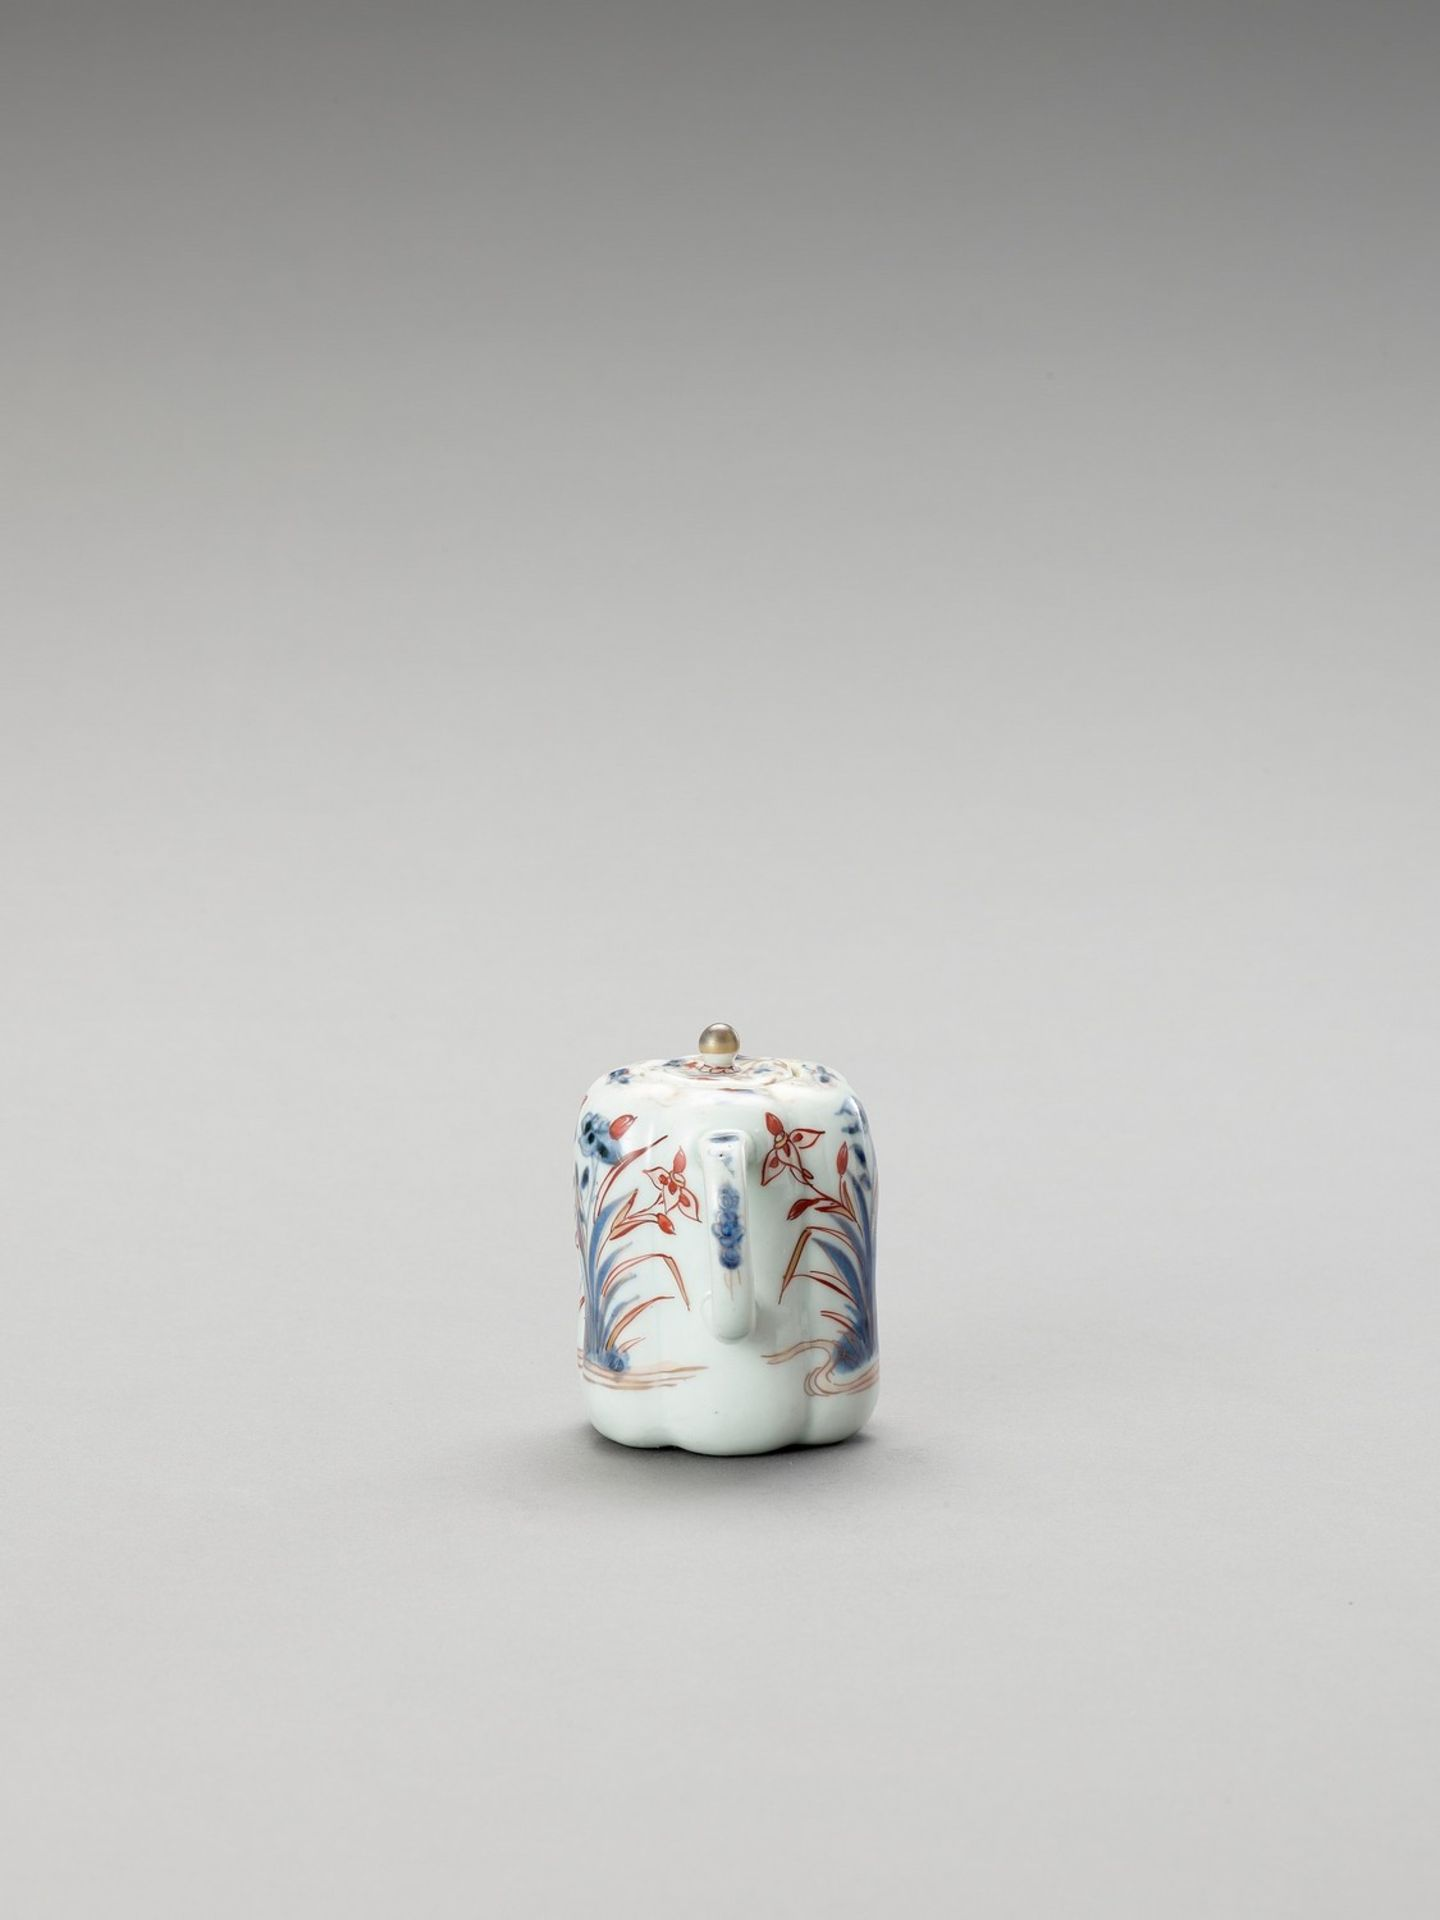 AN IMARI PORCELAIN TEAPOT WITH COVER - Image 4 of 6